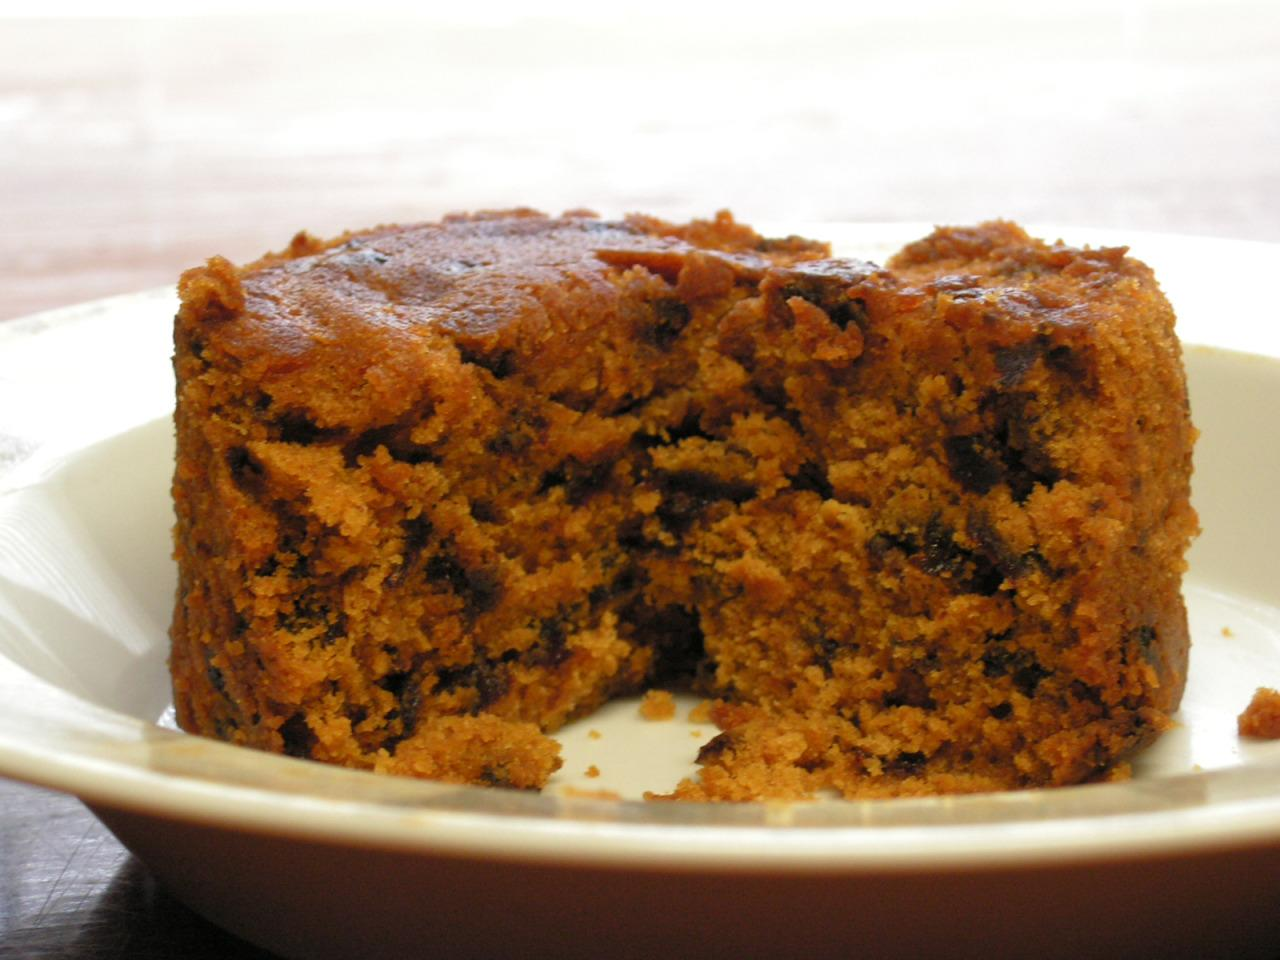 <p>Undoubtedly the rudest-sounding dish in your recipe book, Spotted Dick is puddingmade with suet,raisins and currents. It dates back centuries – the earliest reference is 1849 – but that didn't stop one overly concerned council from changing the name to Spotted Richard.Flintshire County Councilwas apparently sick of all the jokes, so changed the name – much to the chagrin of everyone else.<i> (Credit: WikiCommons)</i></p>